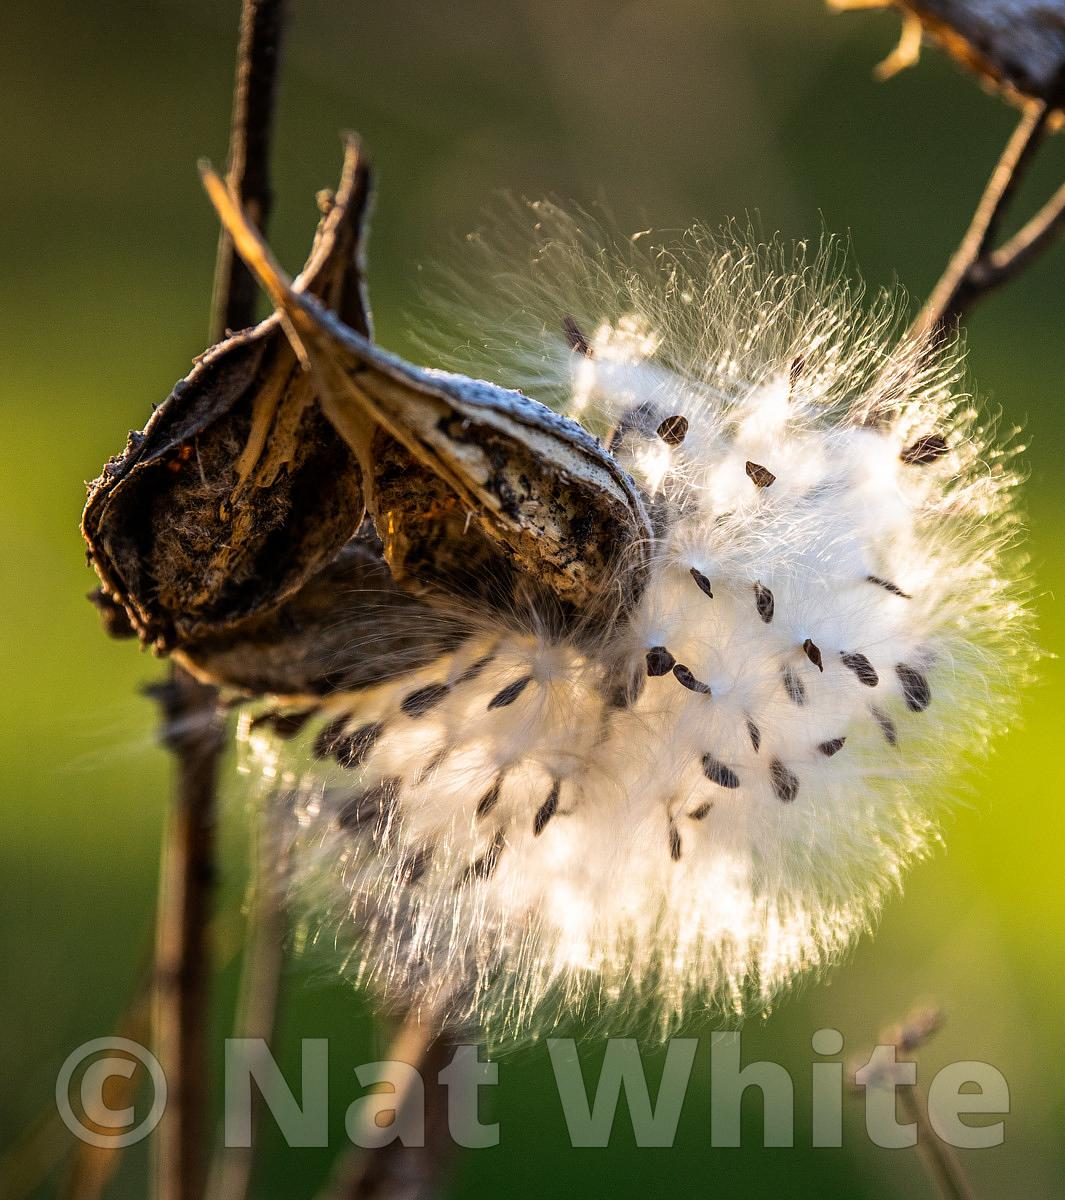 CF_milkweed_and_flowers_Oct_12_2018-October_12_2018-NAT_WHITE-1_1600_sec_at_f_2.8